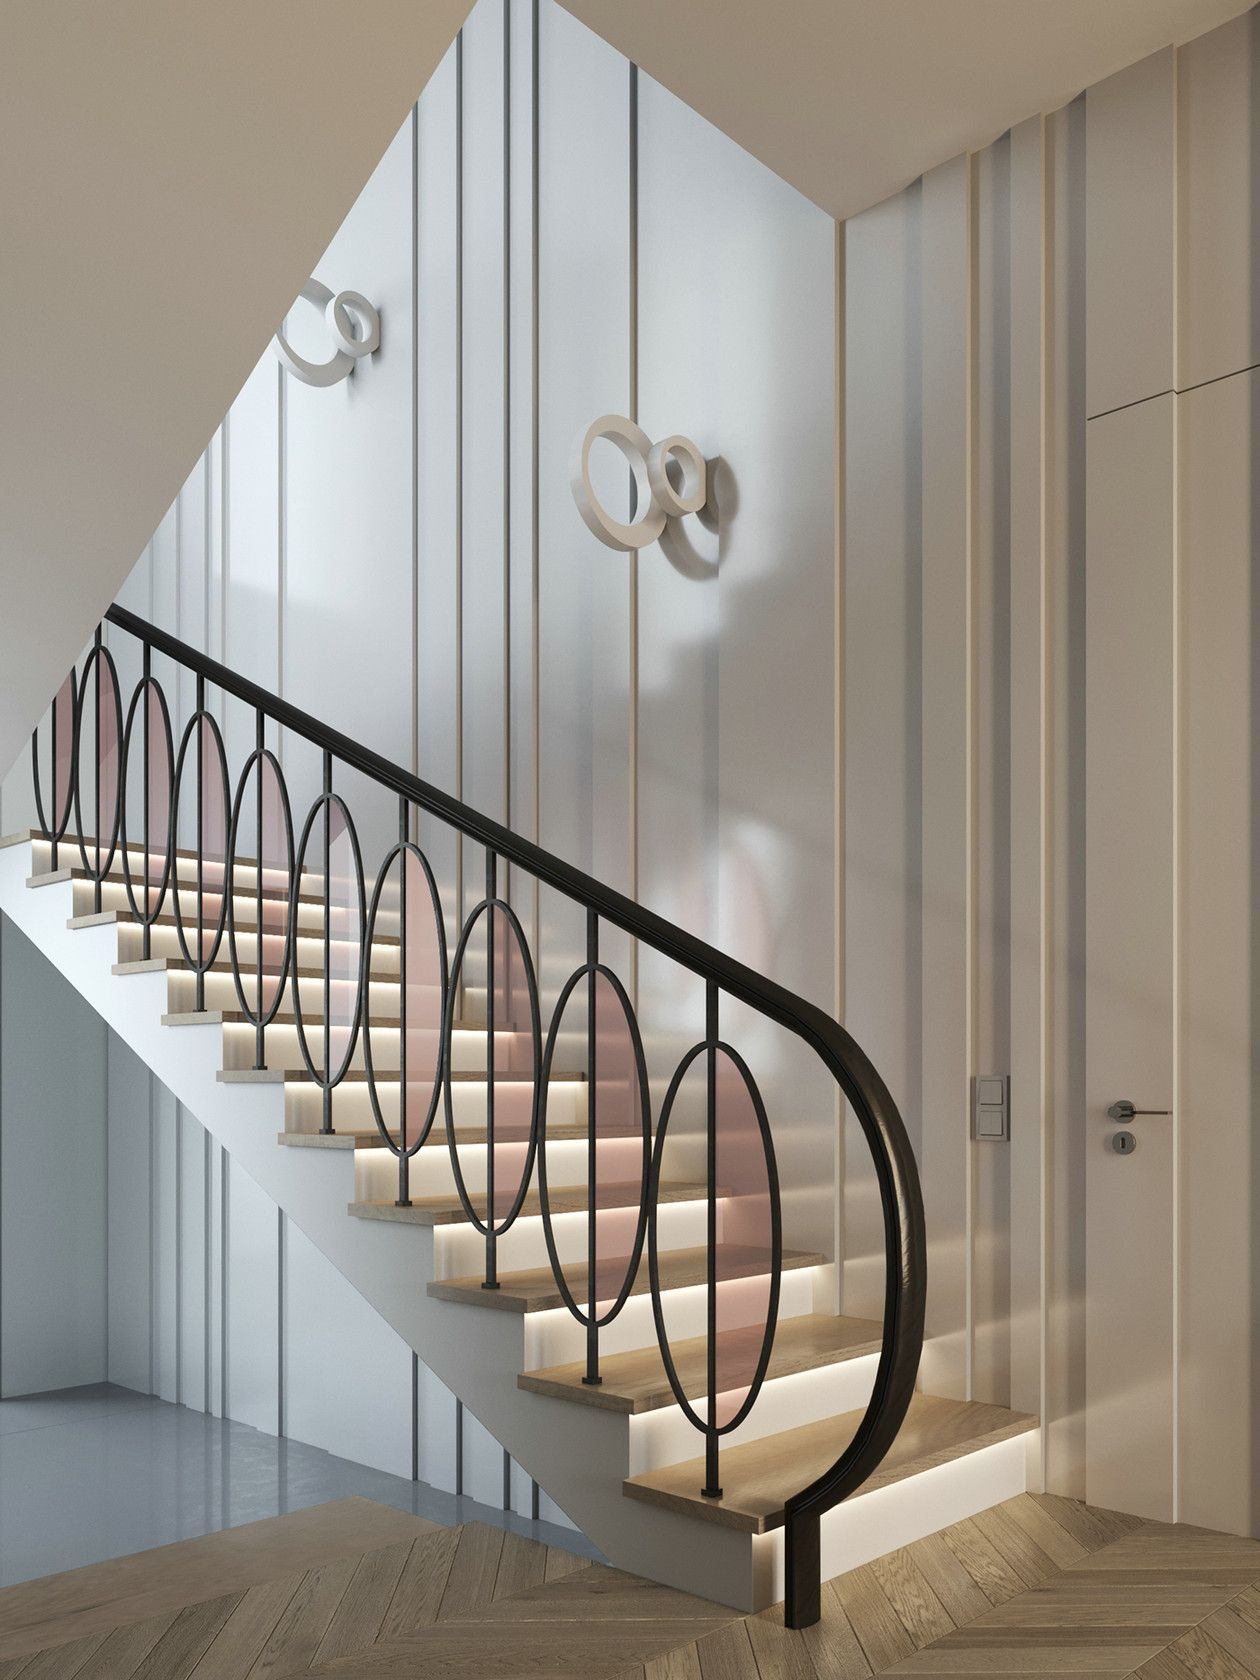 Pin By Squadra On 栏杆 Staircase Design Modern Staircase | Railing Of Stairs Design | Stainless | Wrought Iron | Ultra Modern Stair Grill | Stylish | Creative